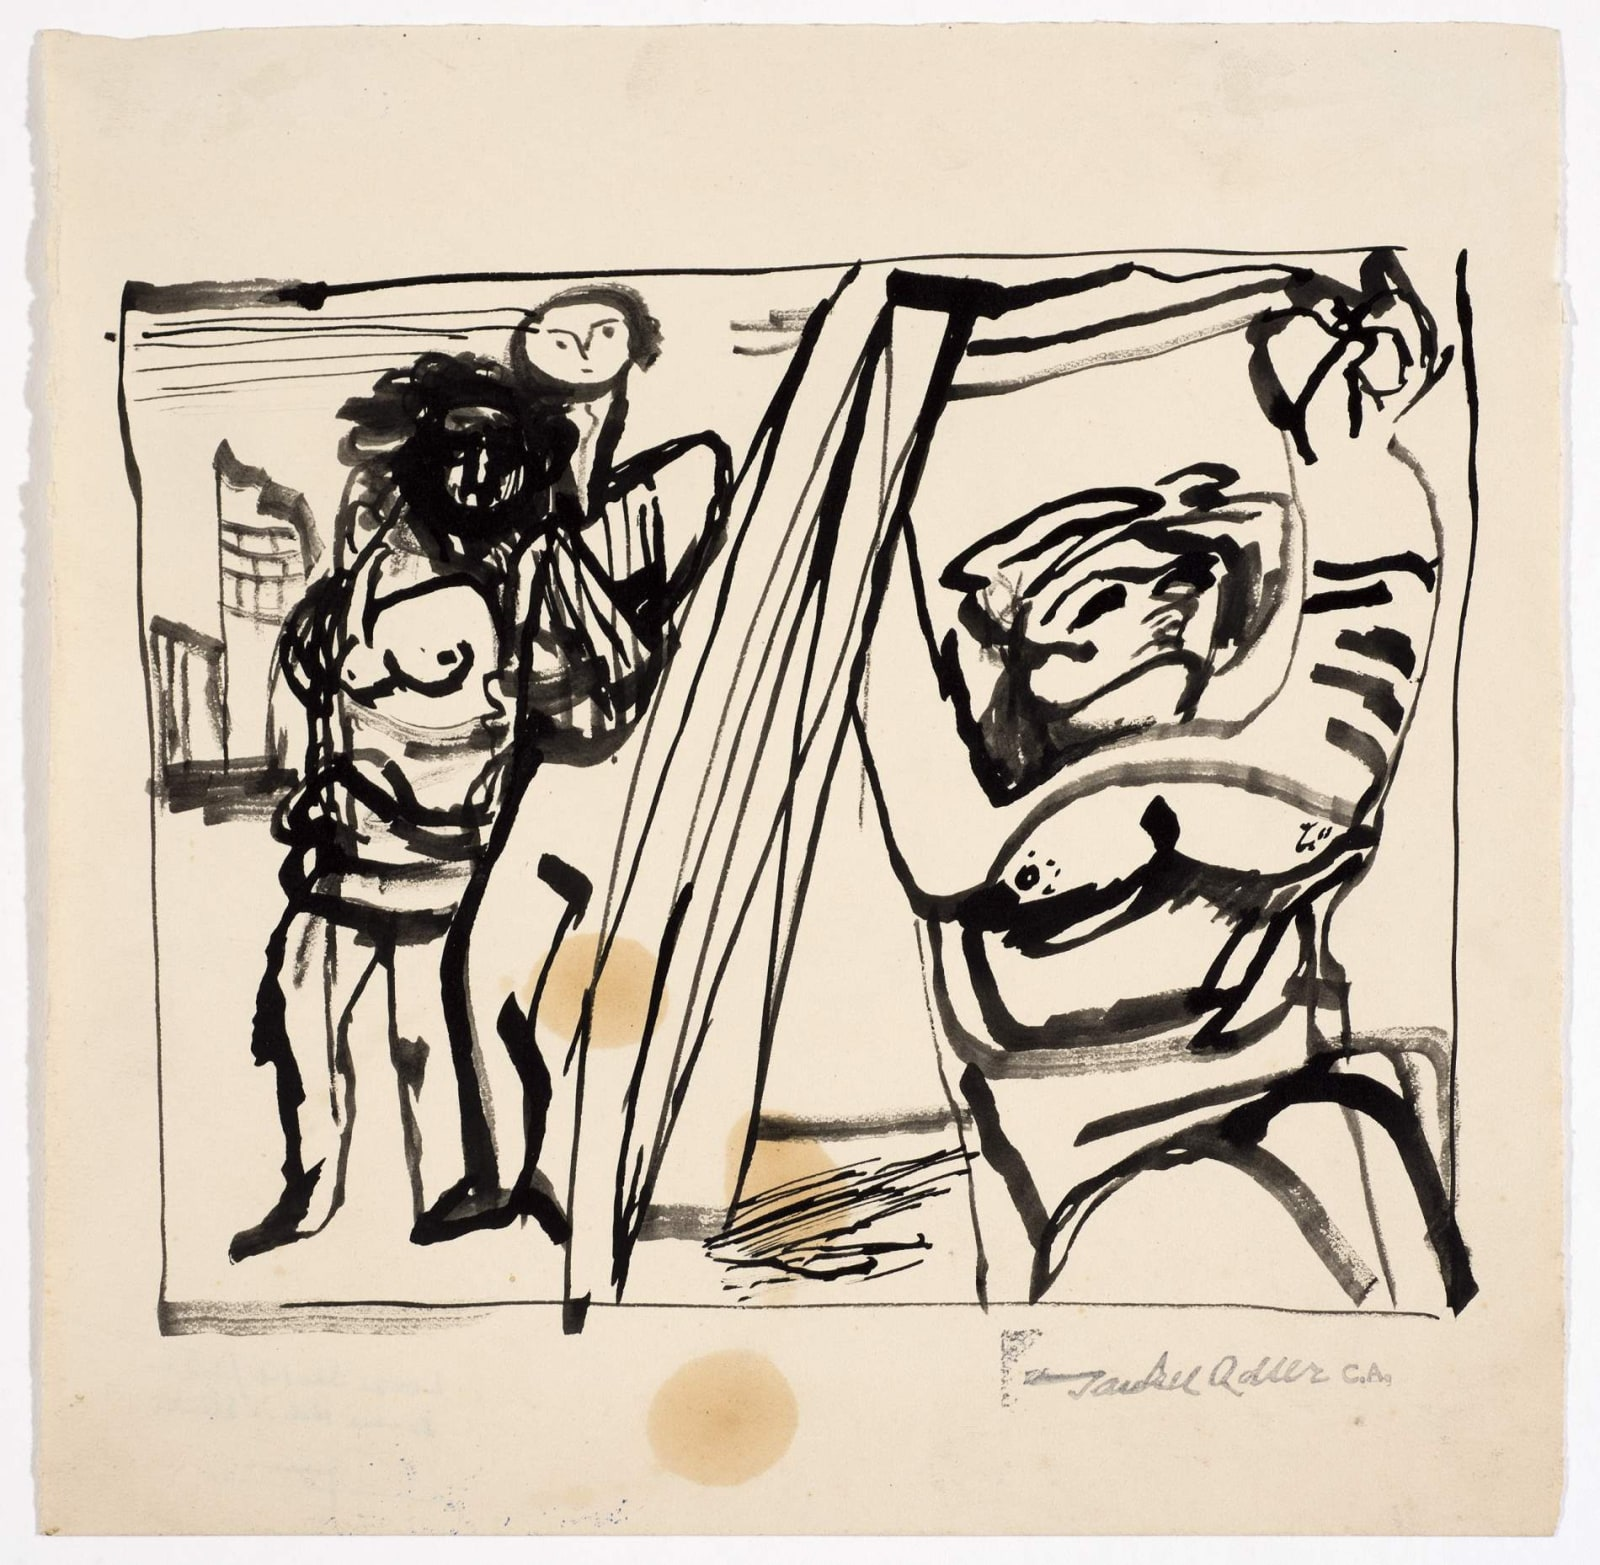 Jankel Adler (1895-1949) Untitled (Two Figures) n.d. Pen and ink on paper 18.5 x 18.5 cm Charles Bezalel Aukin Collection To see and discover more about this artist click here